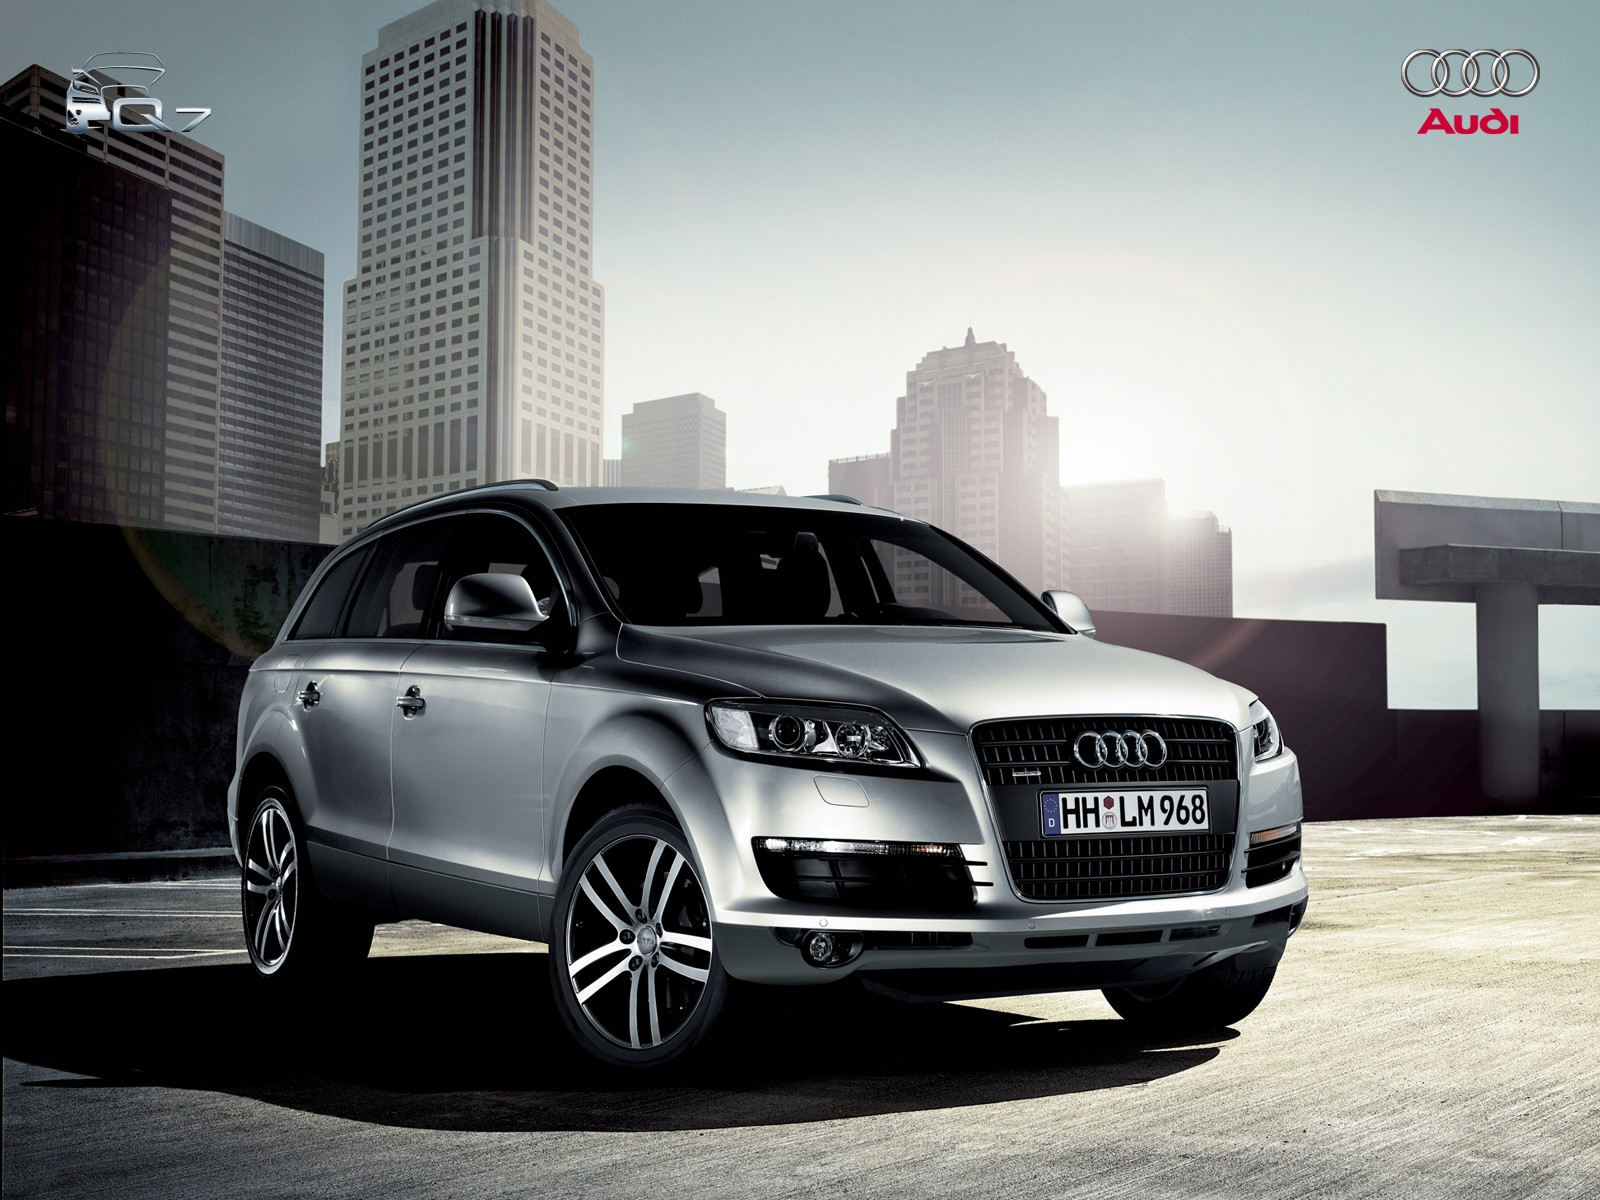 car wallpapers hd audi car wallpapers hd audi car wallpapers